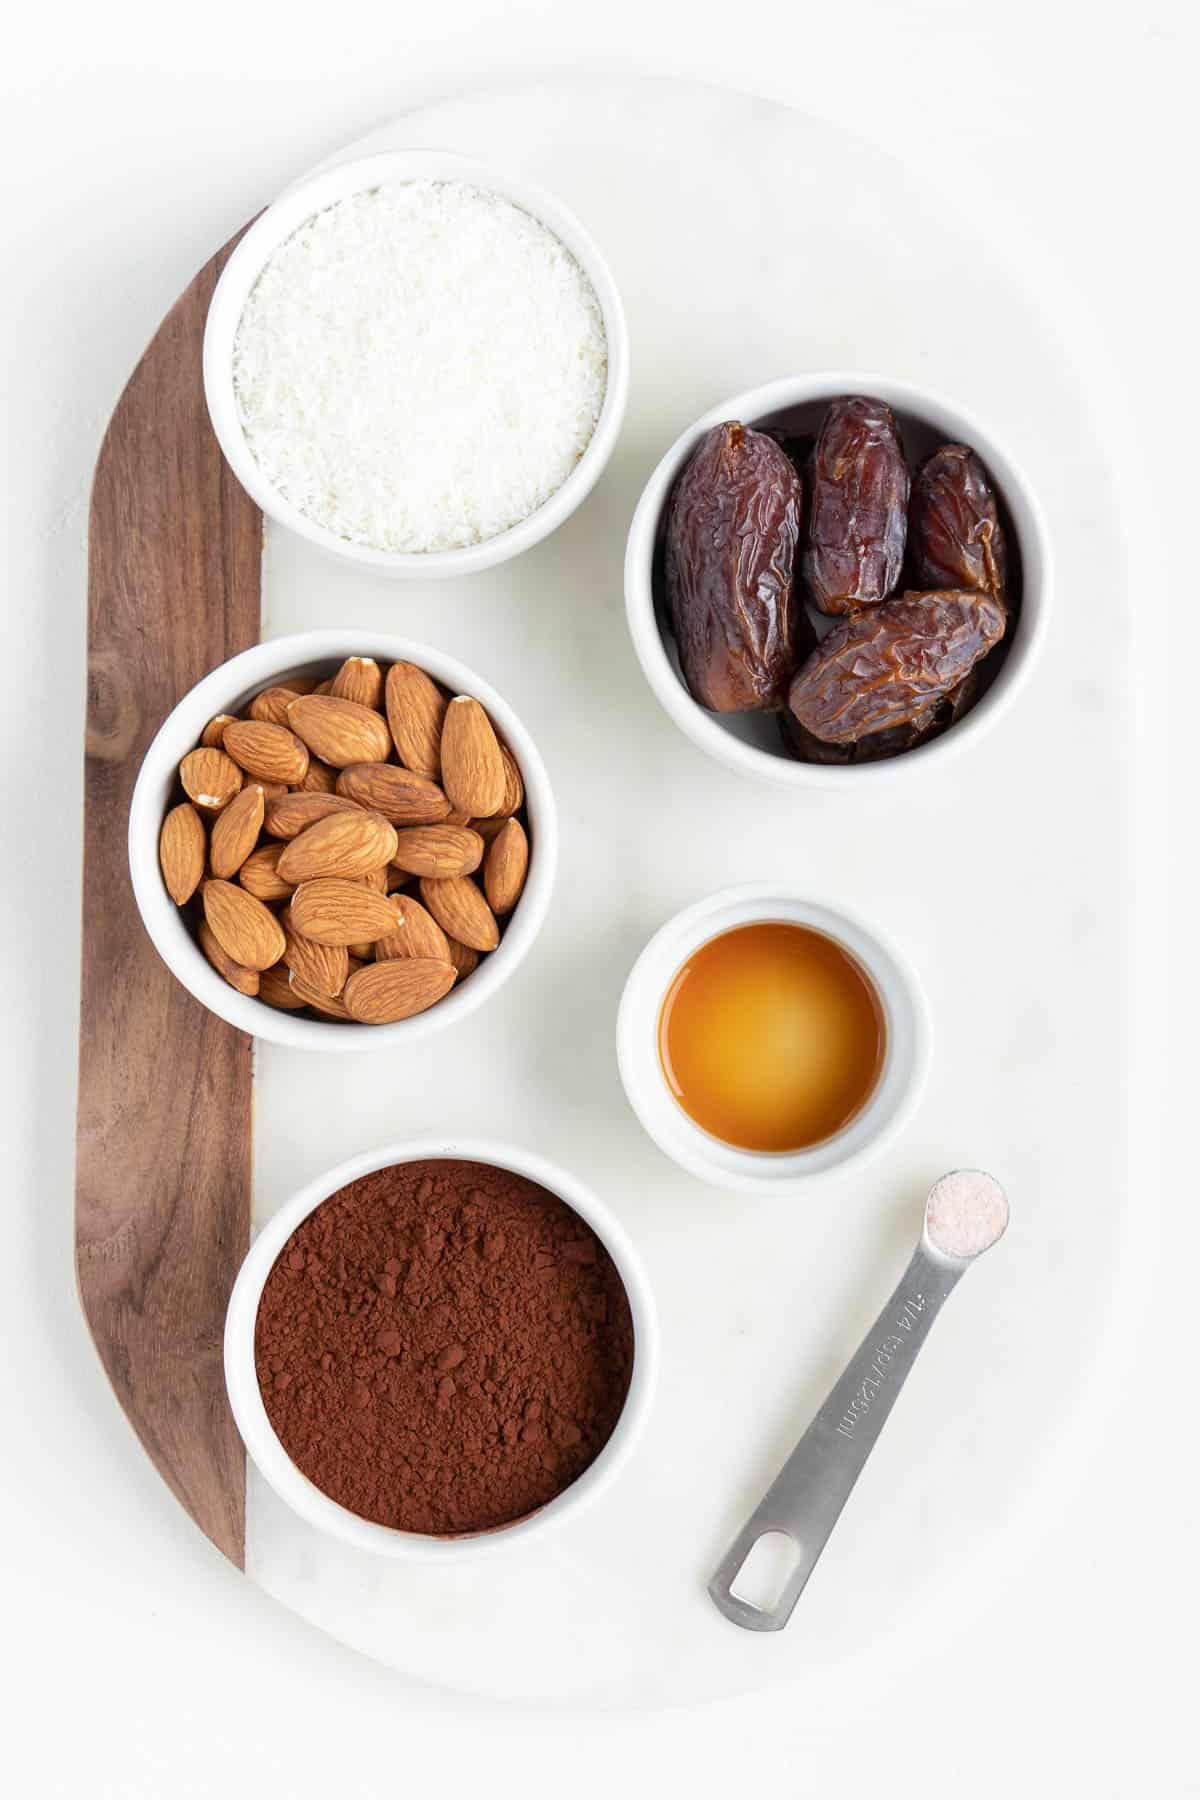 small white bowls filled with raw almonds, medjool dates, cacao powder, vanilla extract, and a teaspoon of salt on a marble board